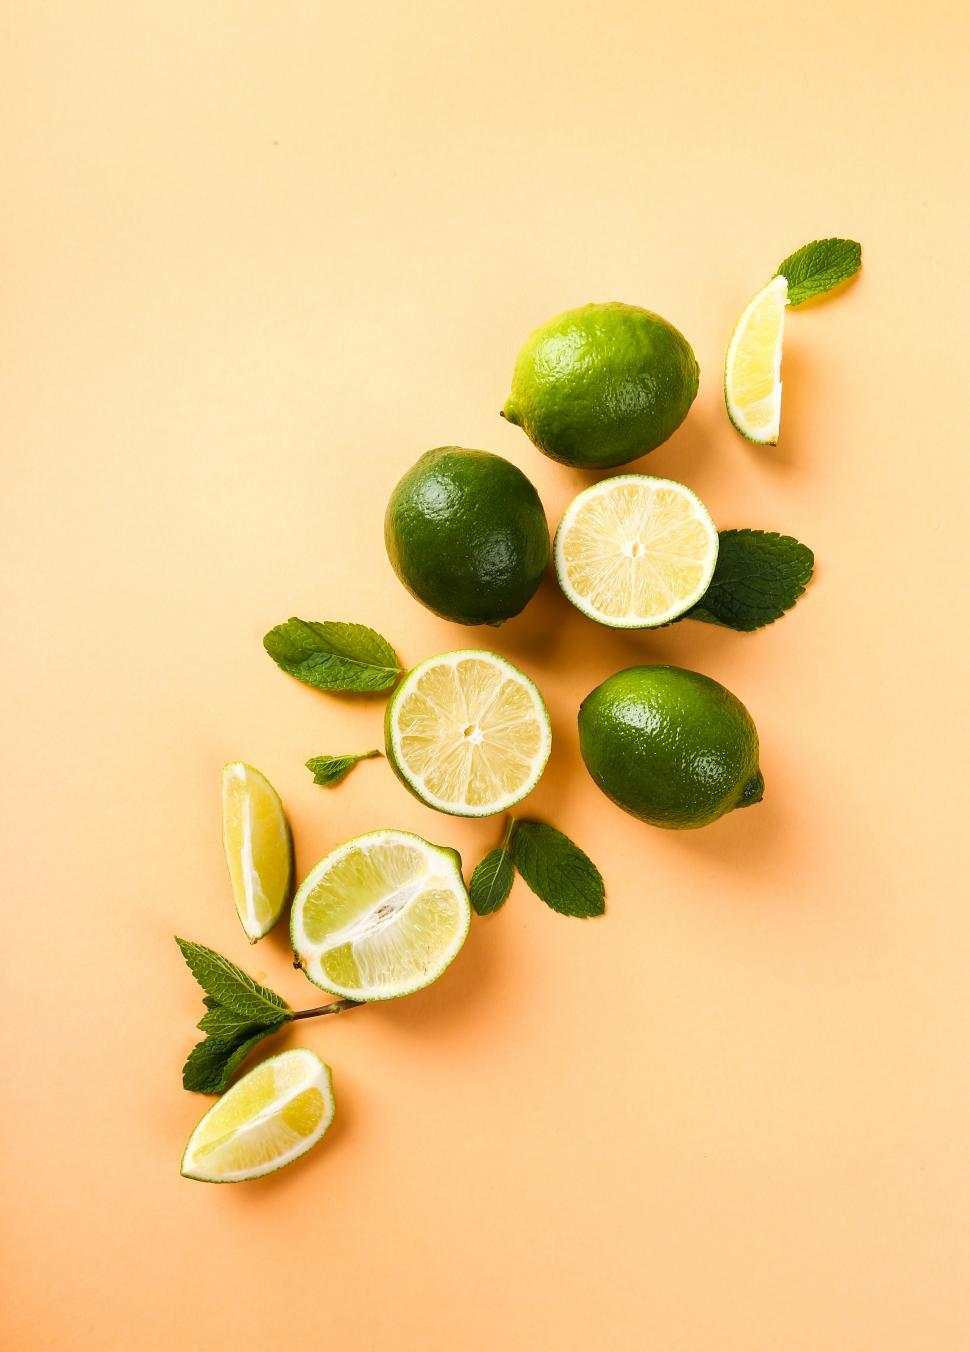 Download Free Stock Photo of Sliced and while limes